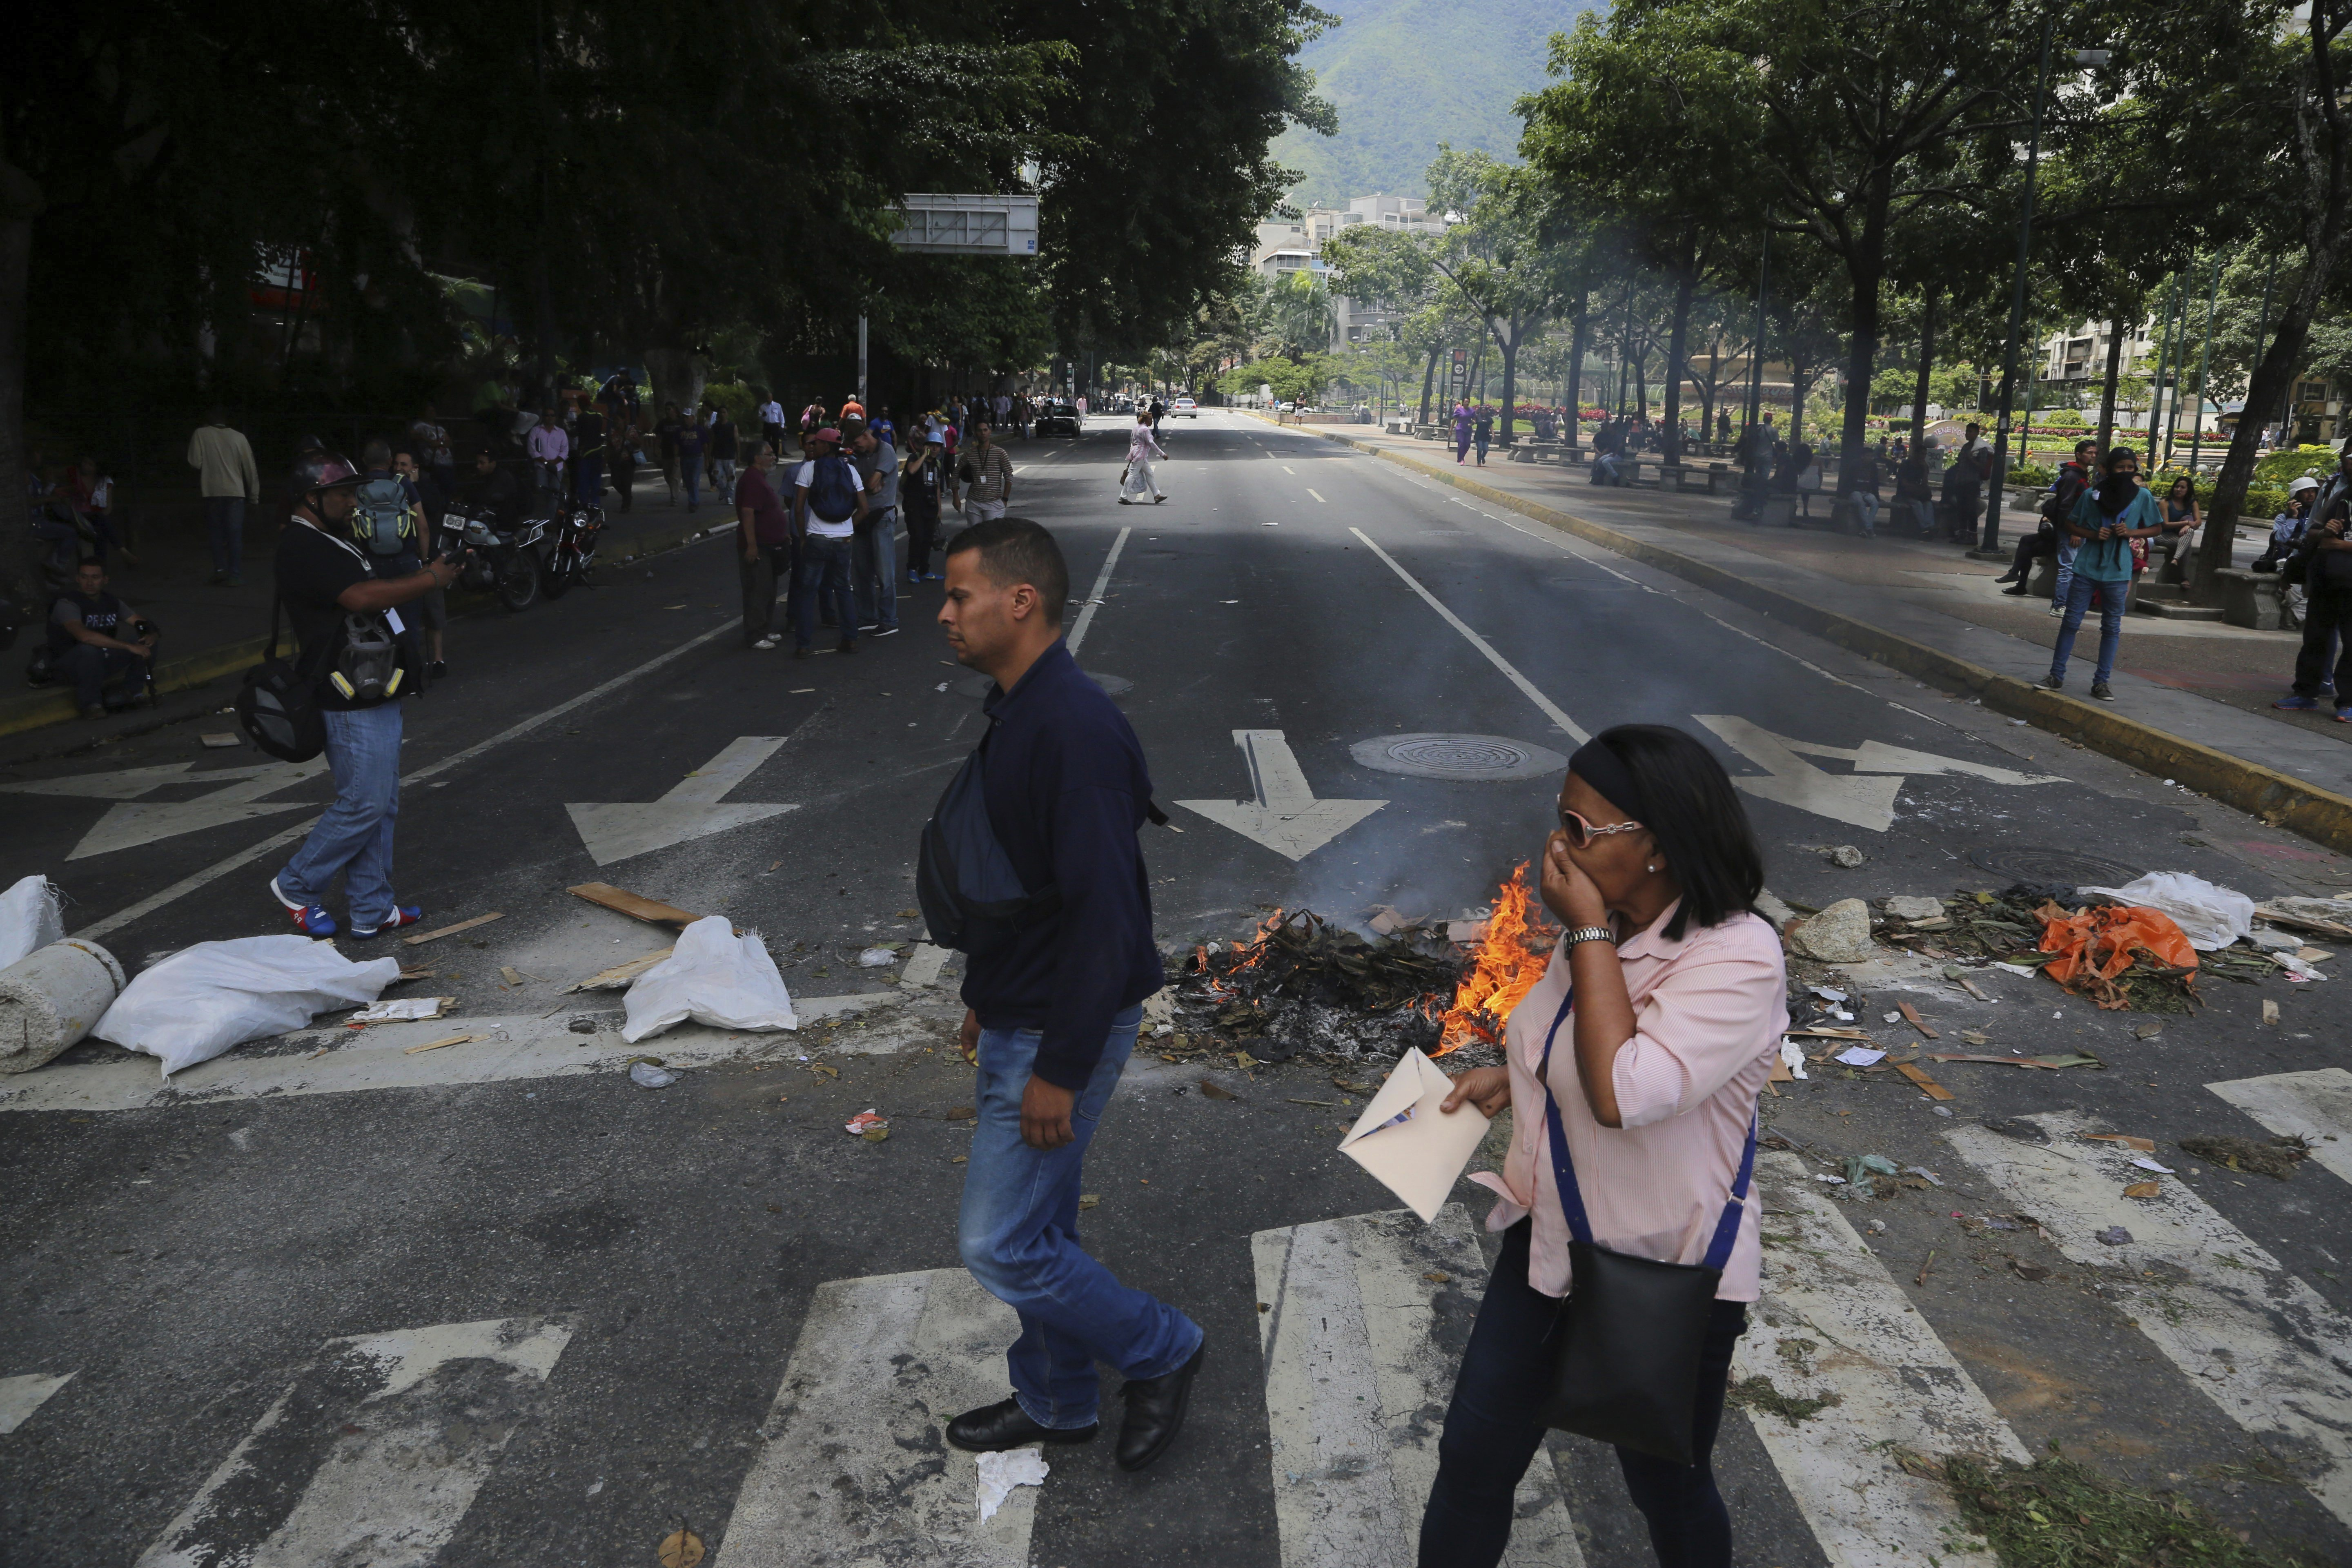 """Venezuela Political Crisis-3 Pedestrians walk past a barricade set up by anti-government demonstrators, in Caracas, Venezuela, Tuesday, Aug. 8, 2017. The U.S. State Department is repeating its rejection of the new government-loaded assembly rewriting Venezuela's constitution, saying it's """"an illegitimate product of a flawed process designed by a dictator."""" (AP Photo/Wil Riera)"""